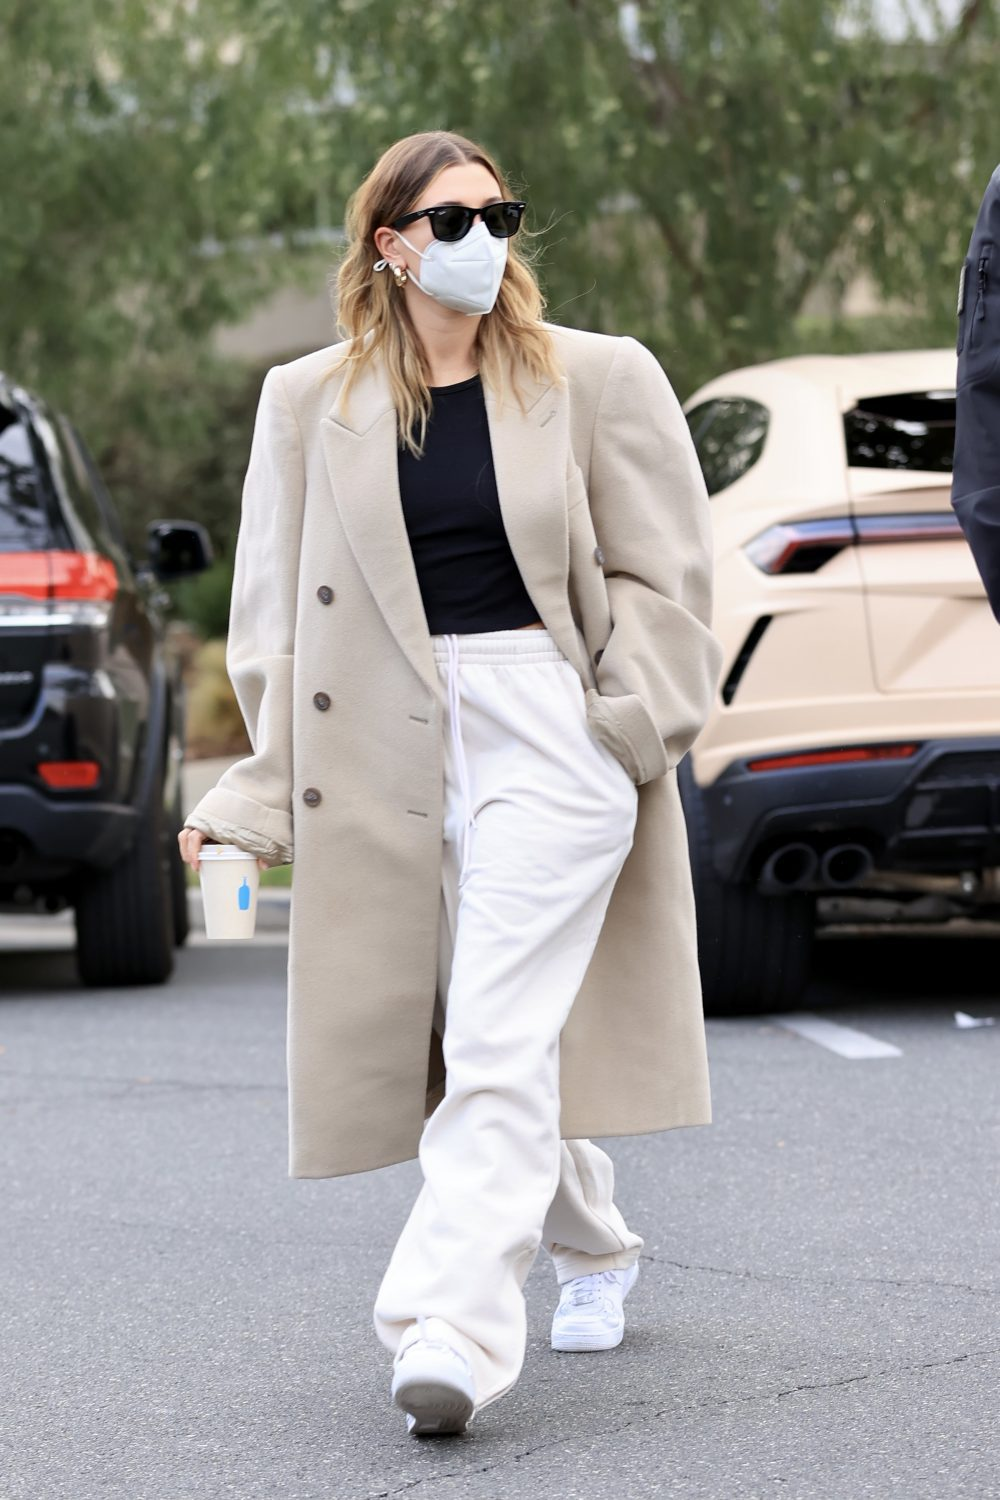 Hailey Bieber stuns in a white outfit heading to a meeting